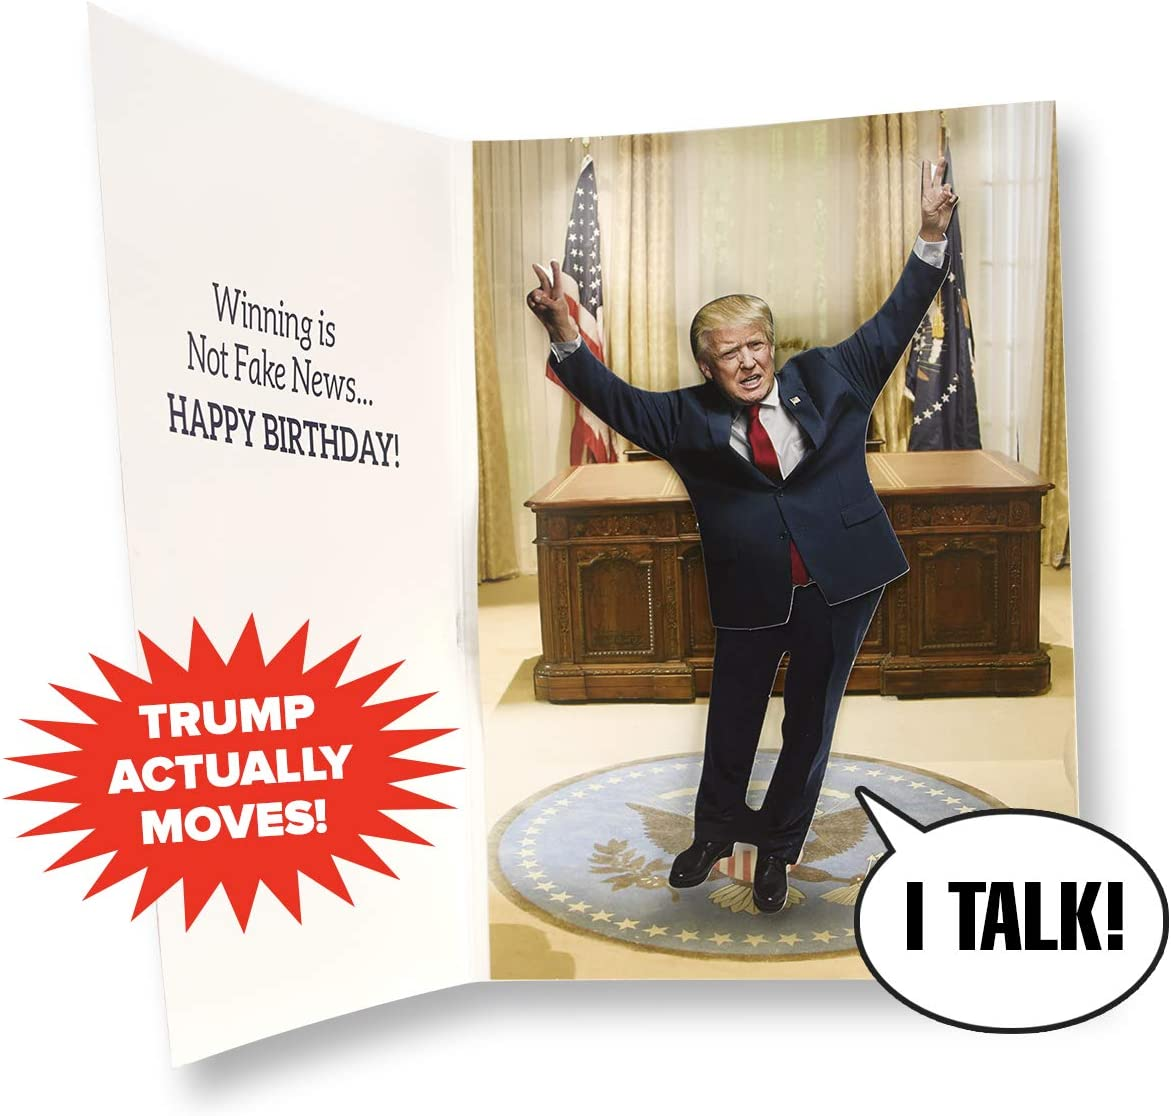 Dancing Donald MOTION & SOUND Birthday Card – Donald Trump Dances in Celebration When Card is Opened – Includes 20 seconds of Trump's voice – Create Big Laughs – Funny Trump Gift - Happy Birthday